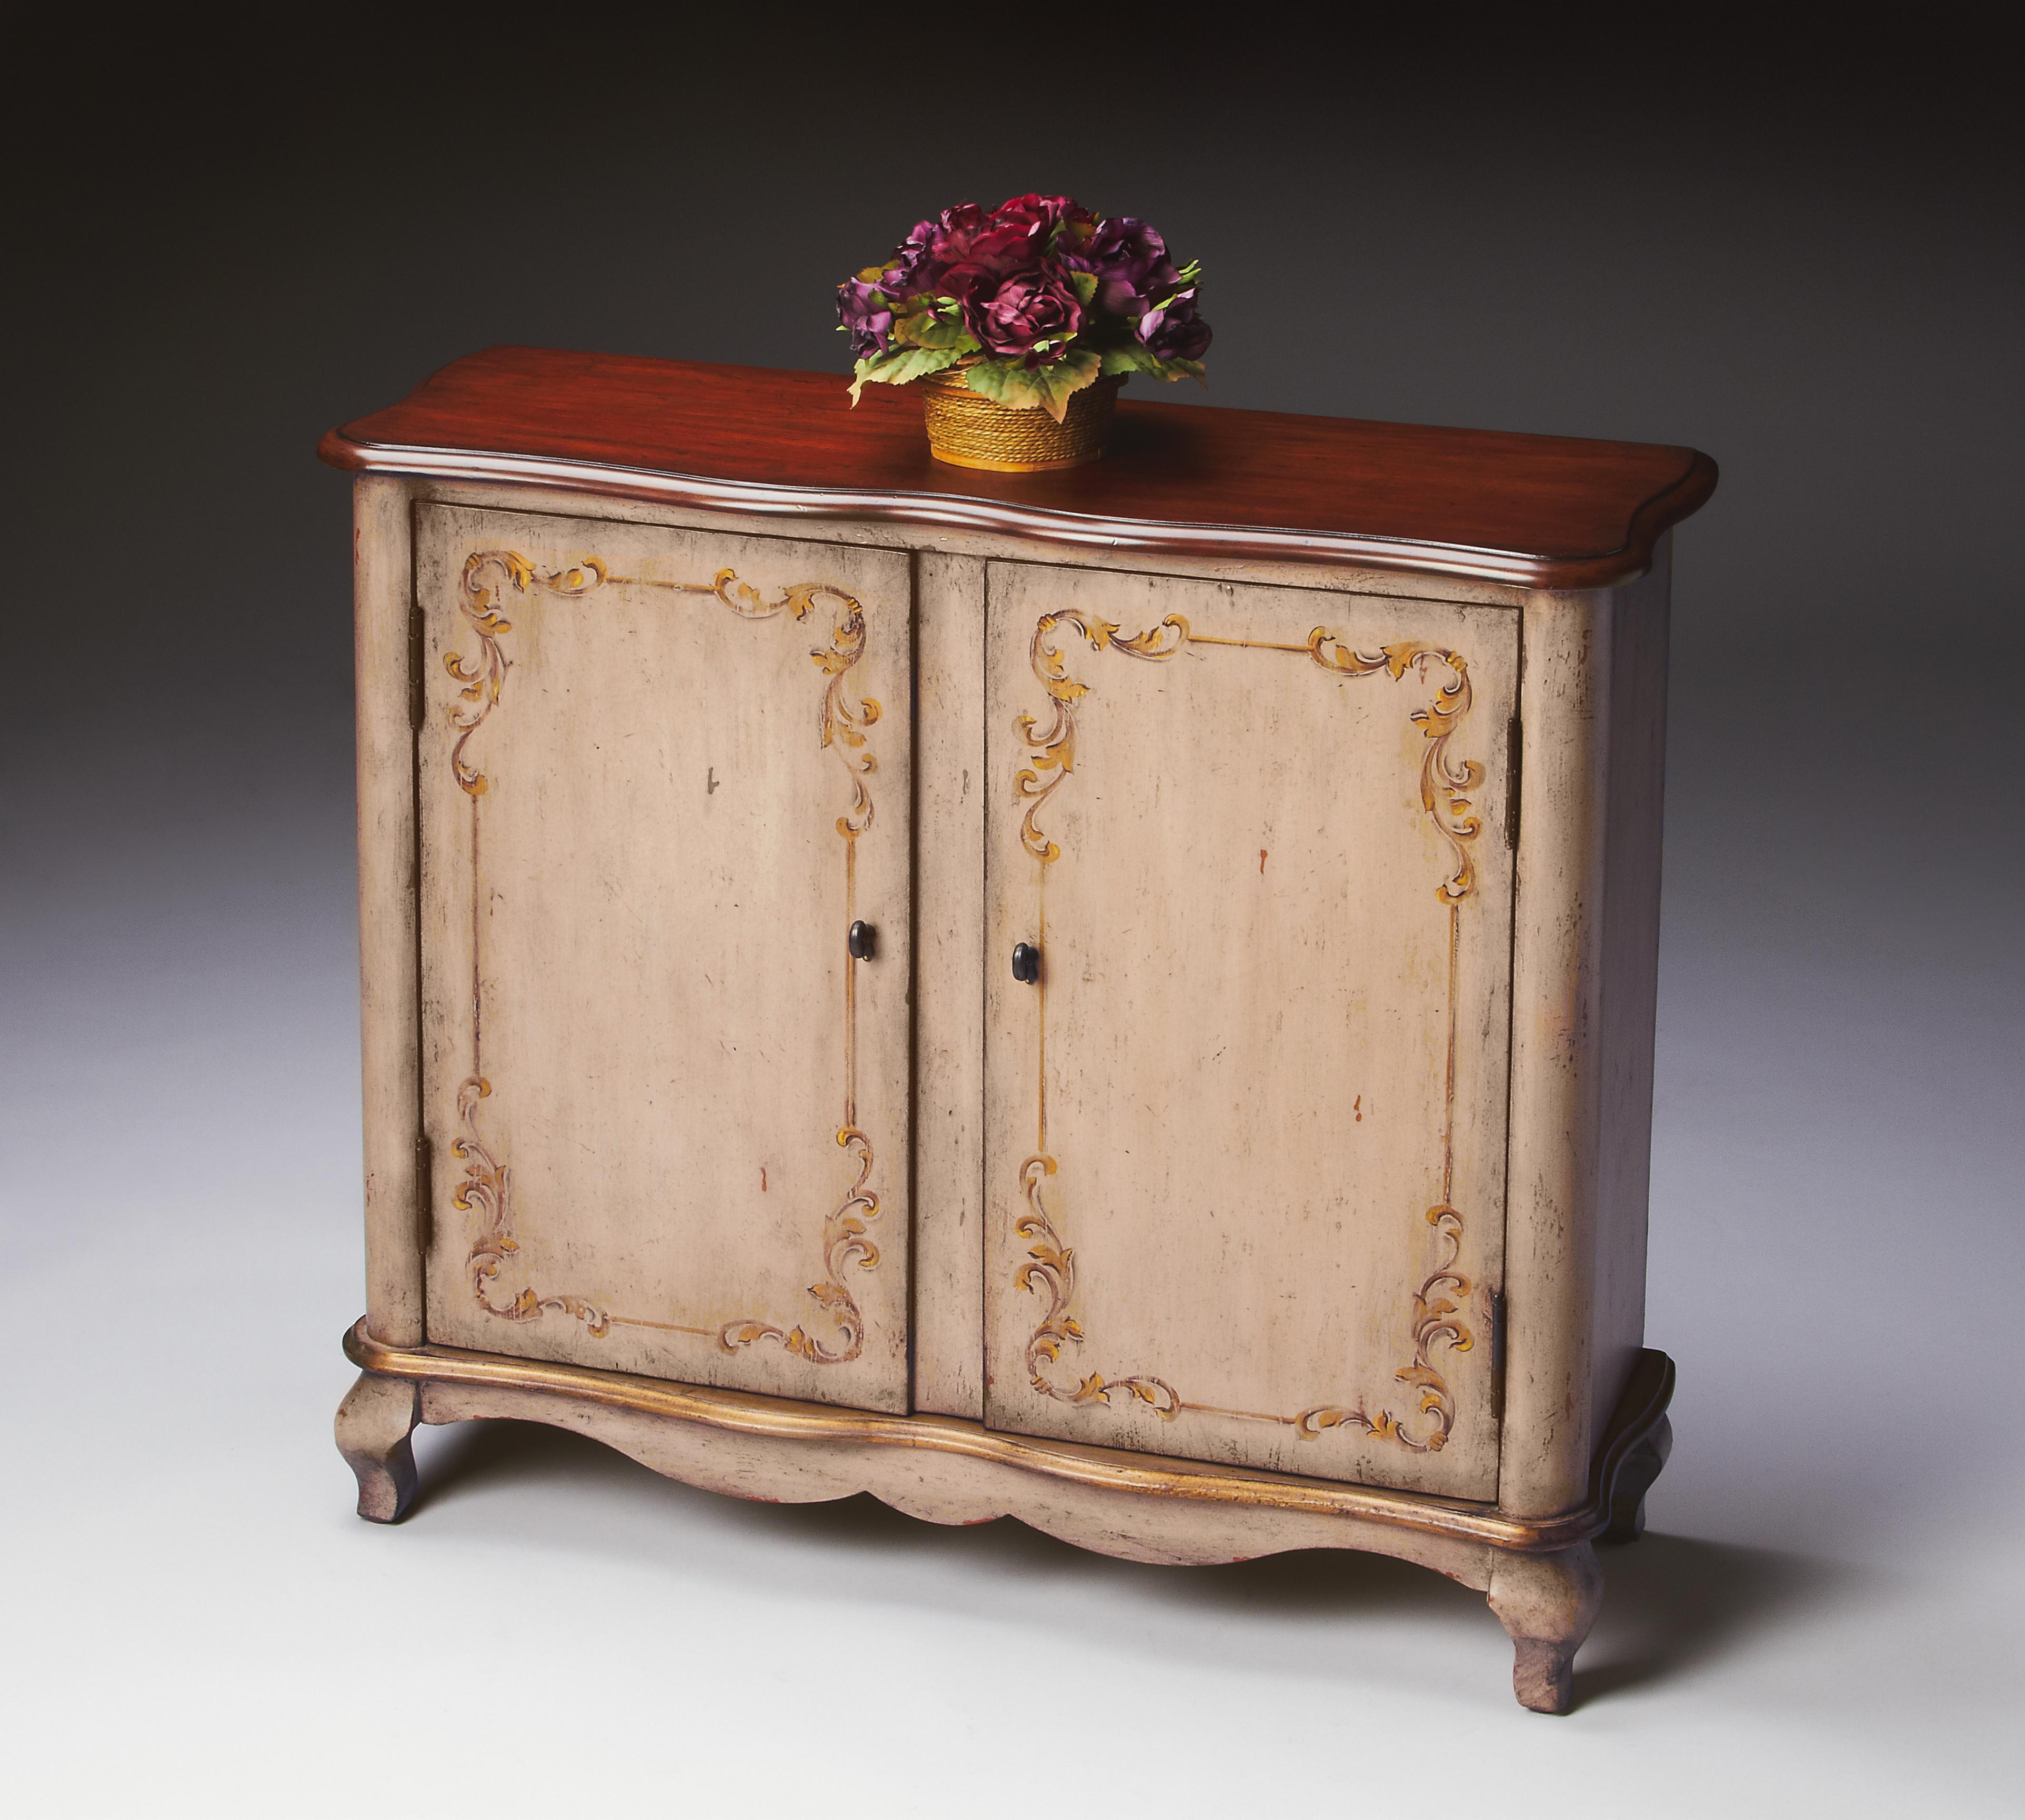 Butler Specialty Company Artist's Originals Console Chest - Item Number: 1737232